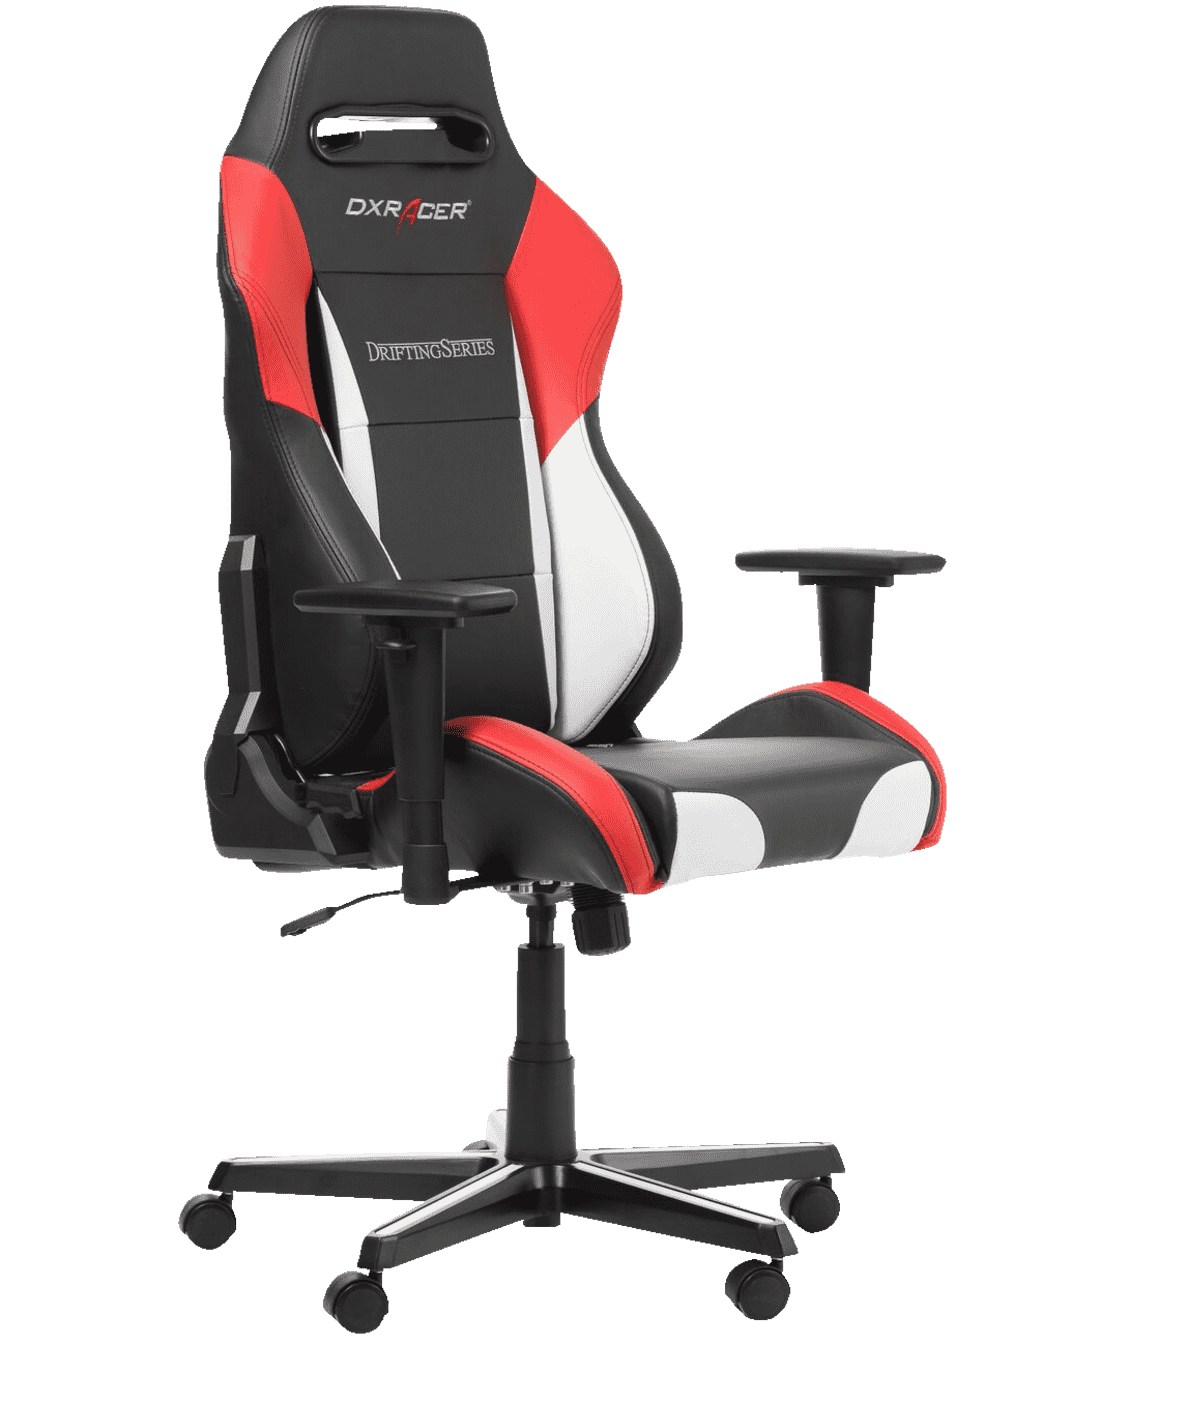 DXRACER Drifting Black/White/Red Gaming Chair Schwarz/Weiß/Rot